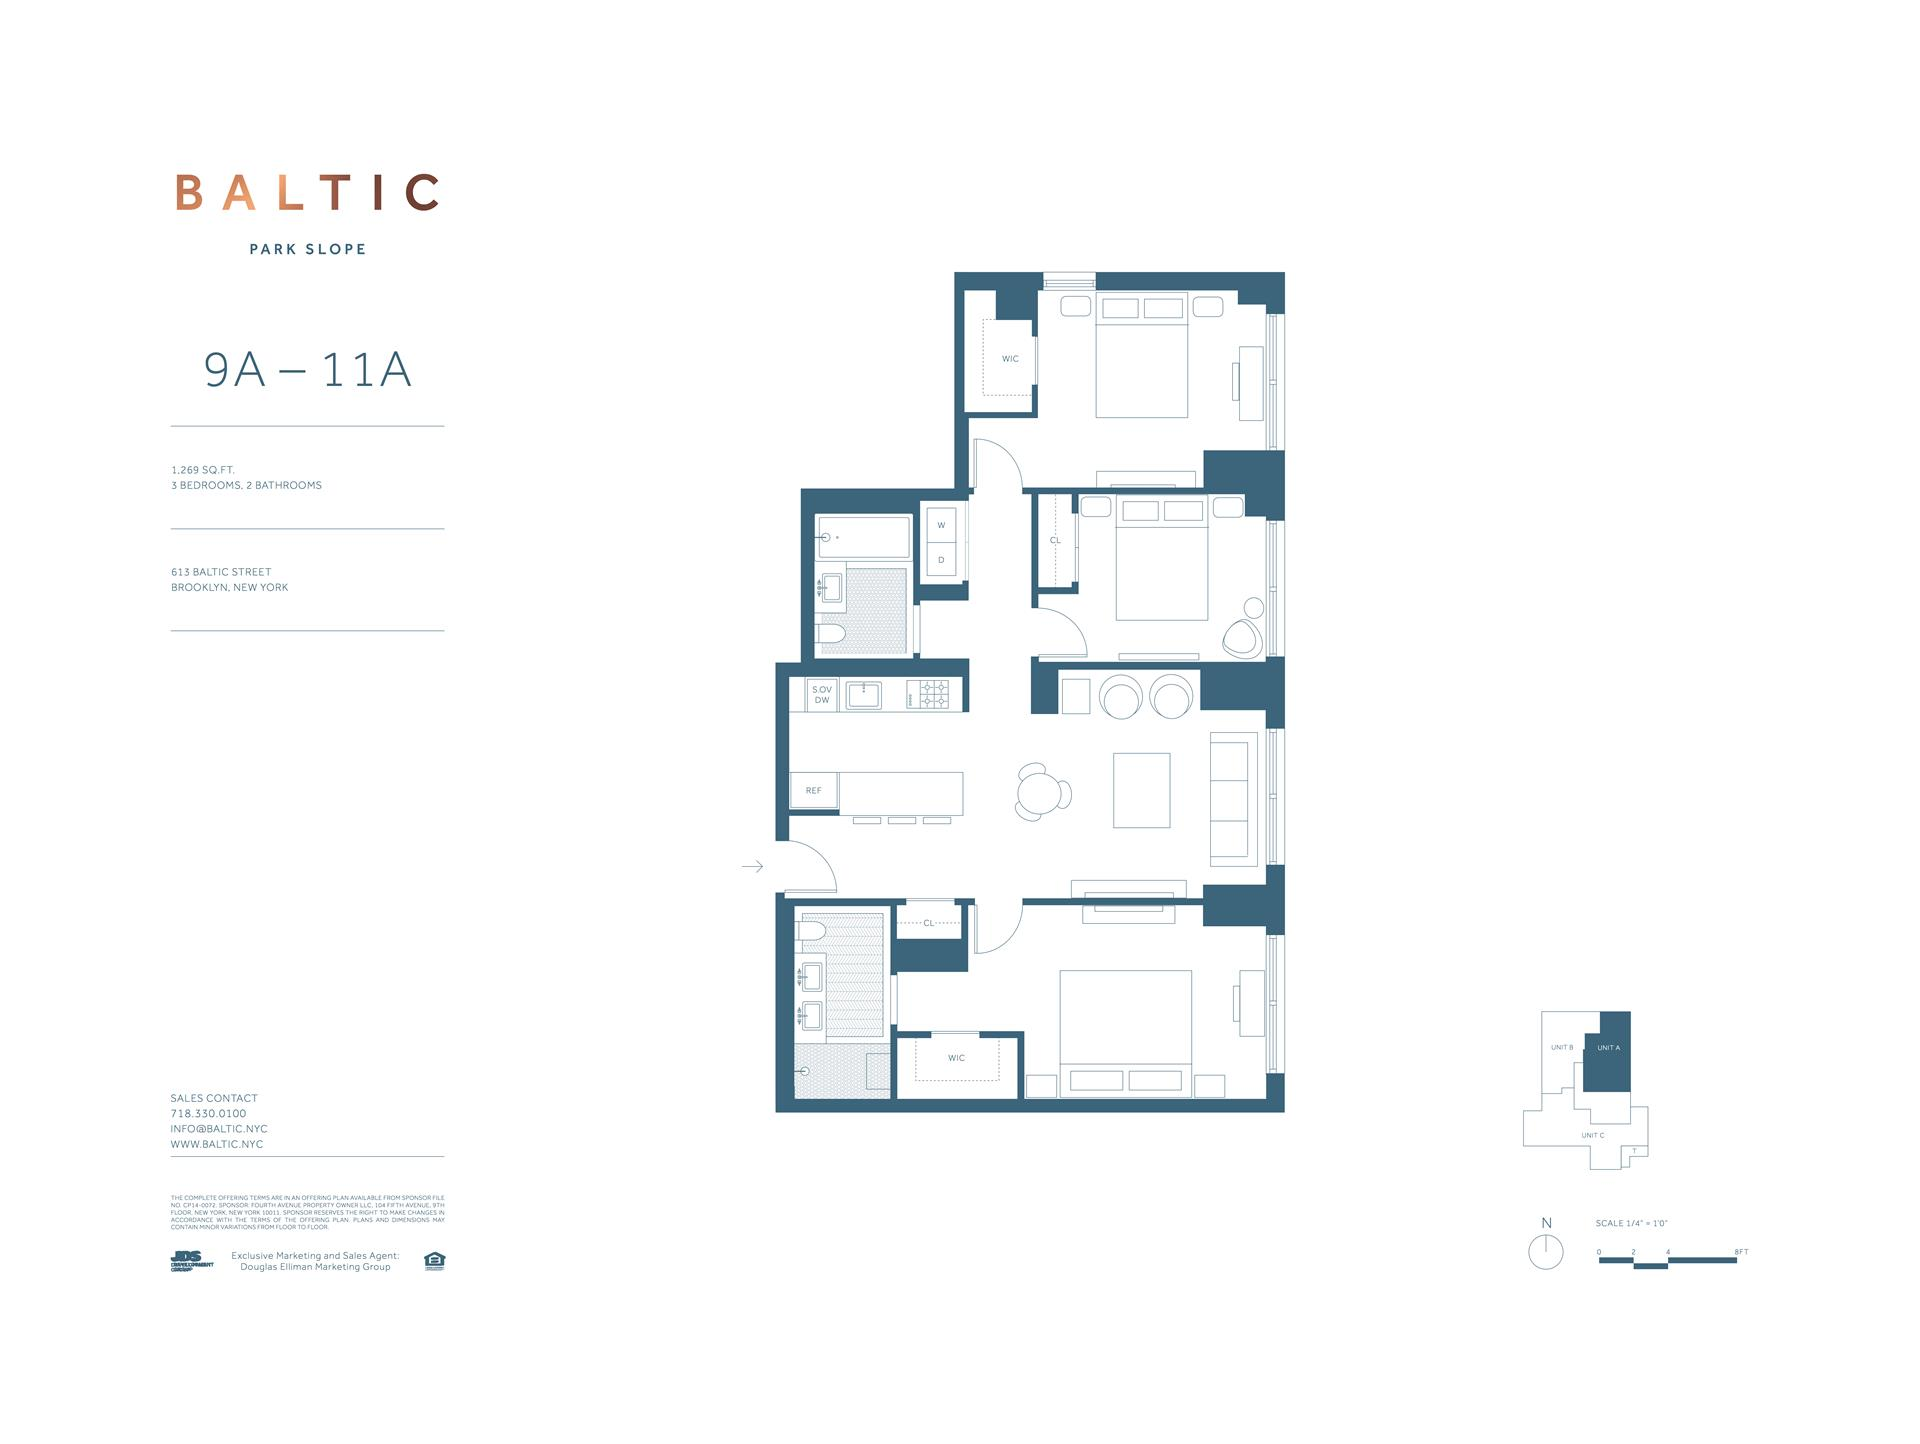 Floor plan of 613 Baltic St, 10A - Park Slope, New York